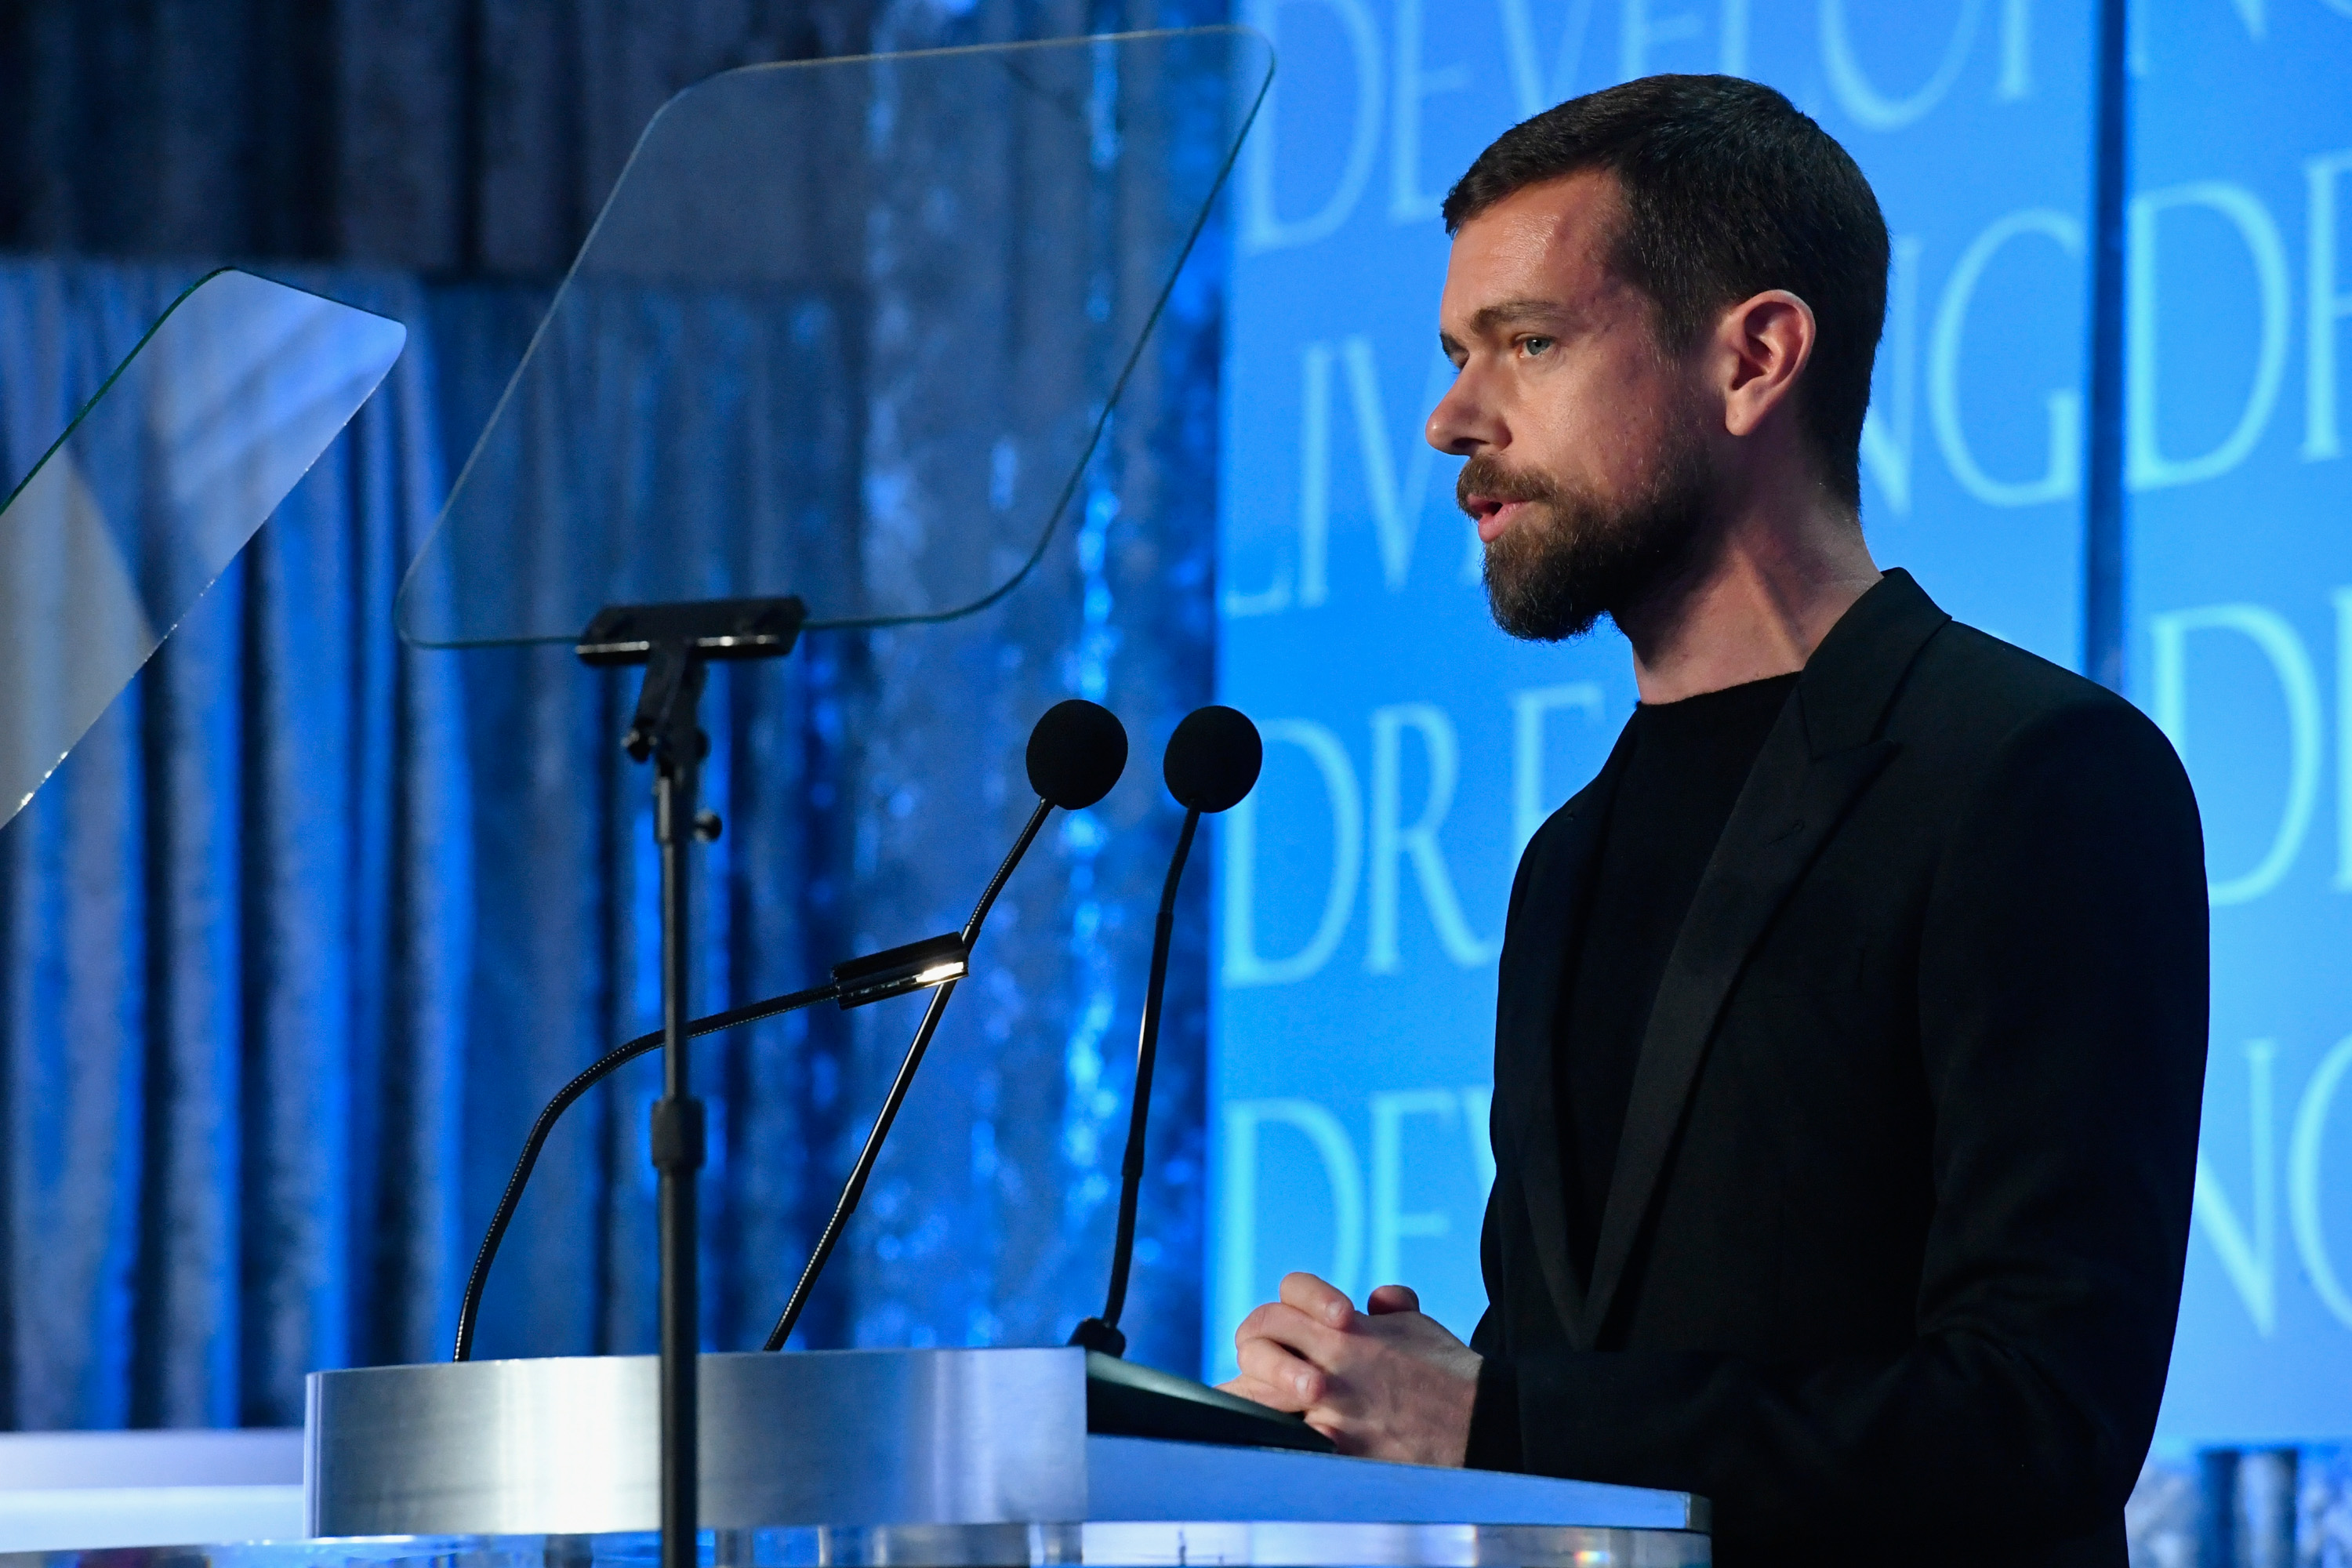 Twitter CEO Jack Dorsey onstage speaking from a podium into a pair of microphones